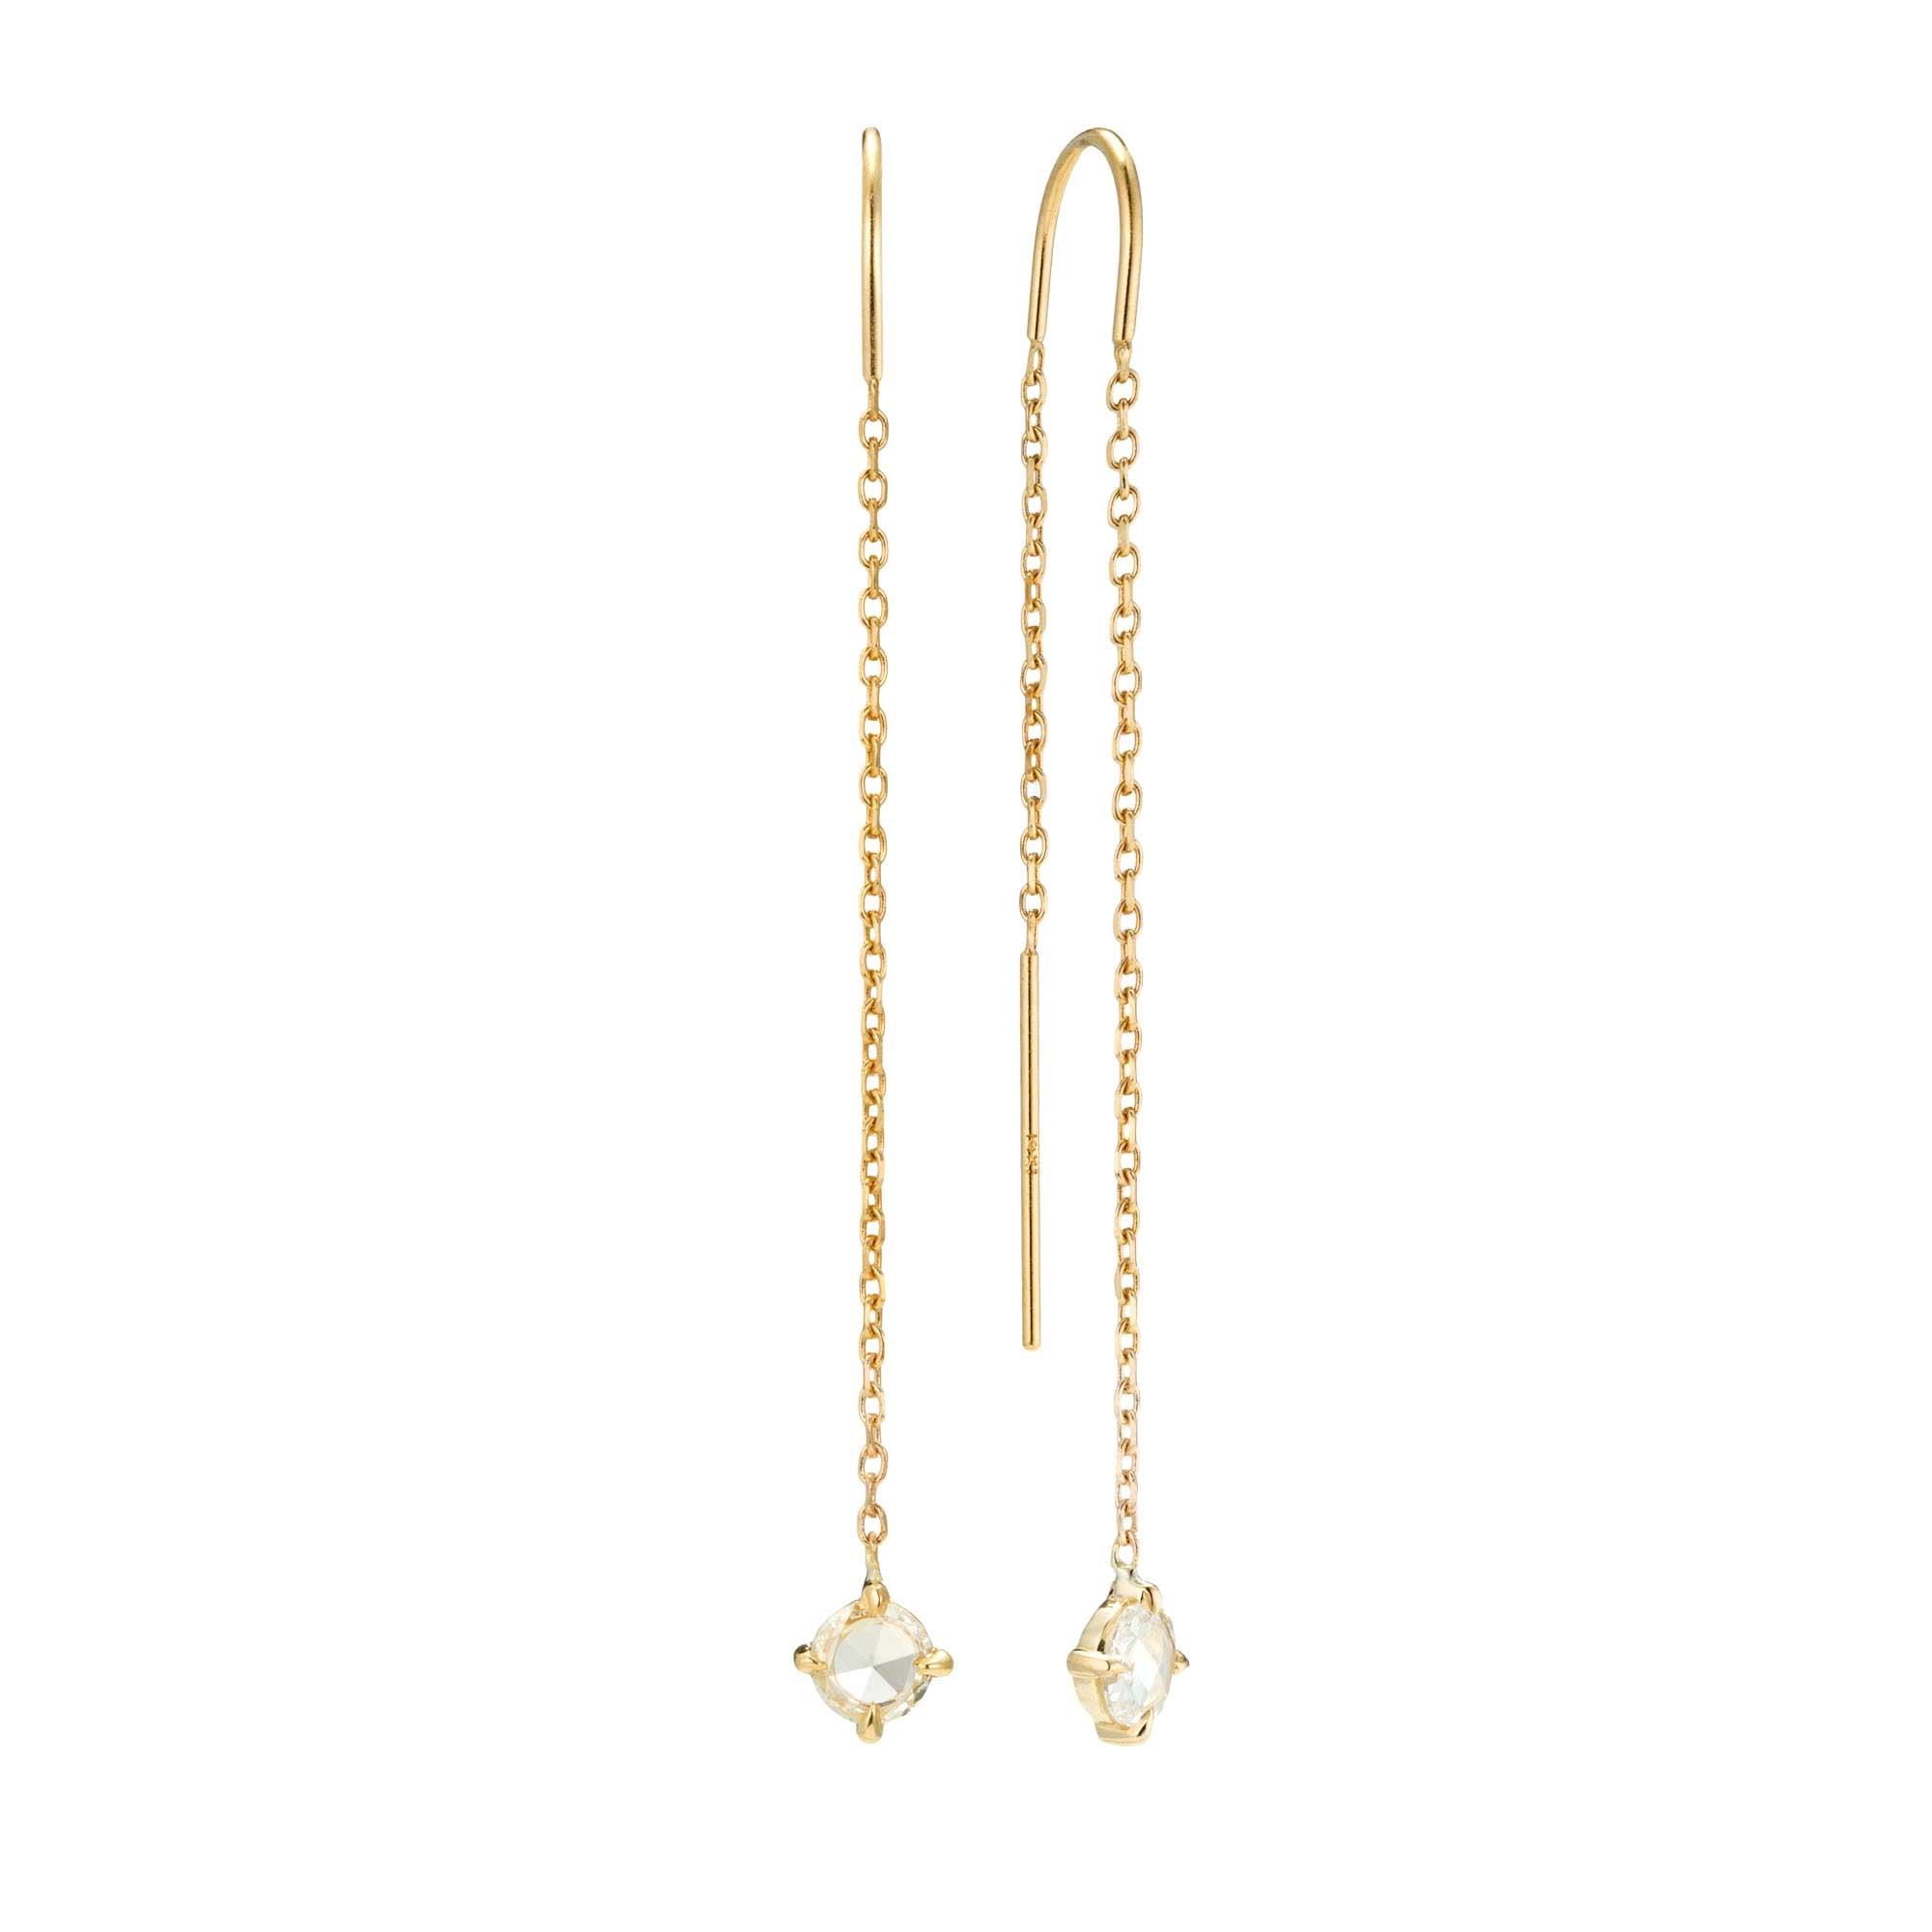 14k Yellow gold diamond chain threader earring by Valerie Madison